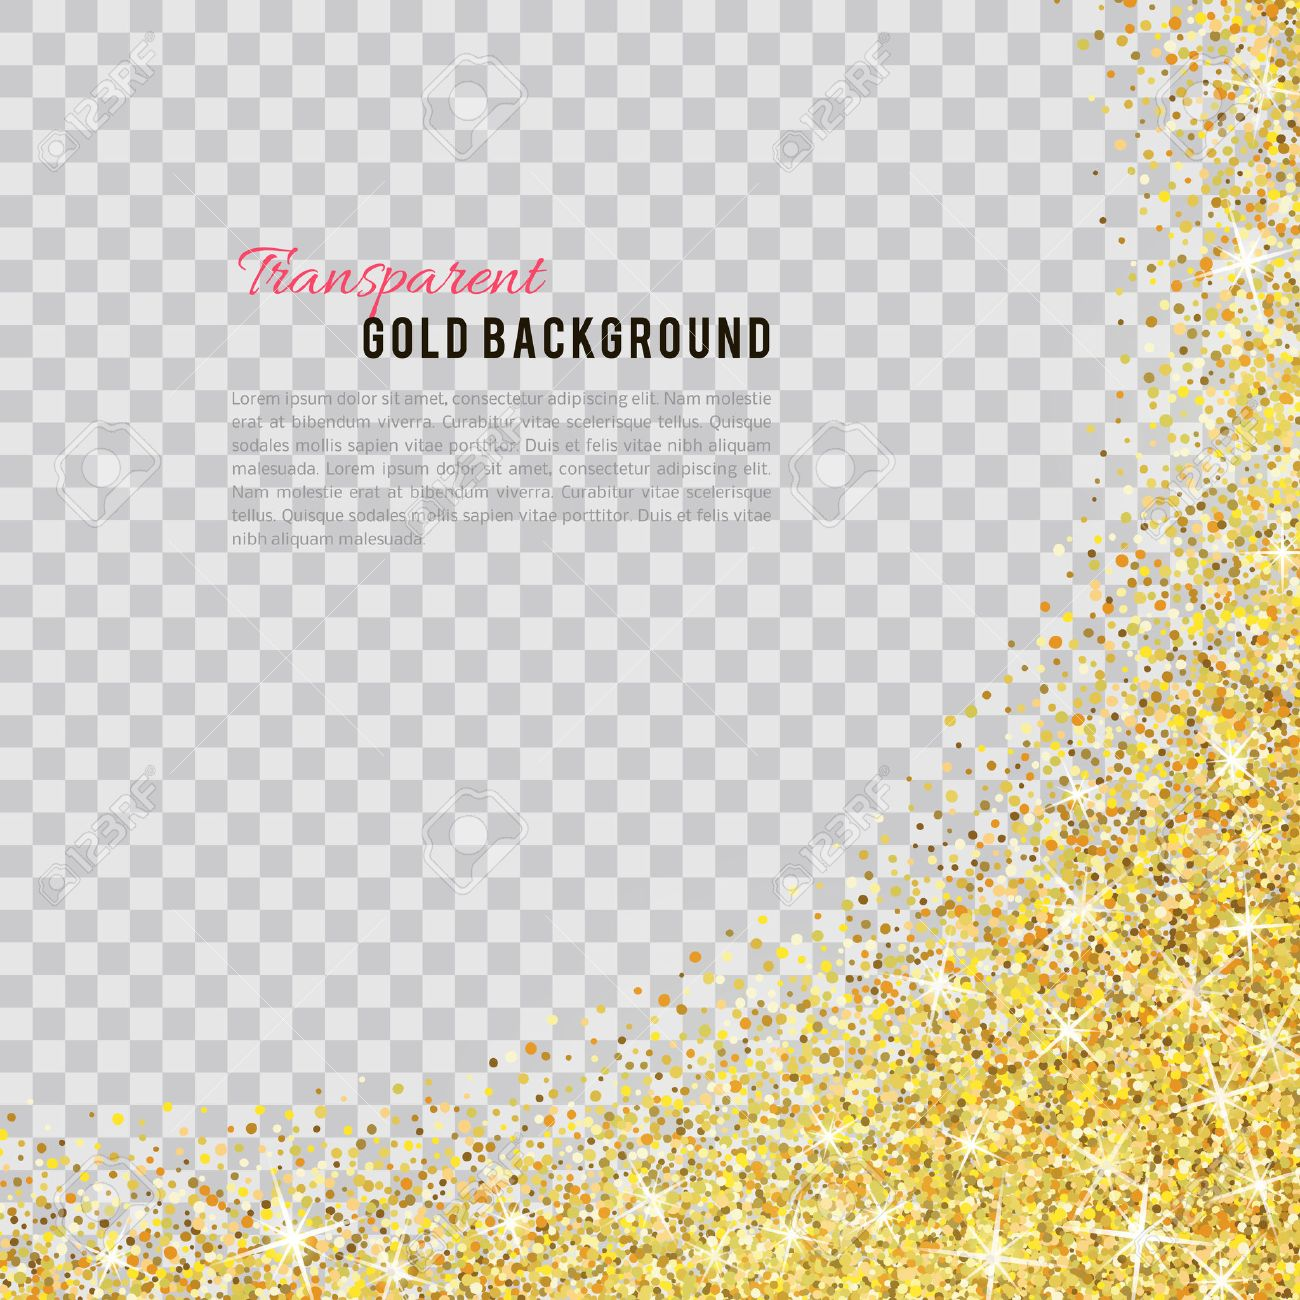 Gold glitter texture isolated on transparent background. - 53524531